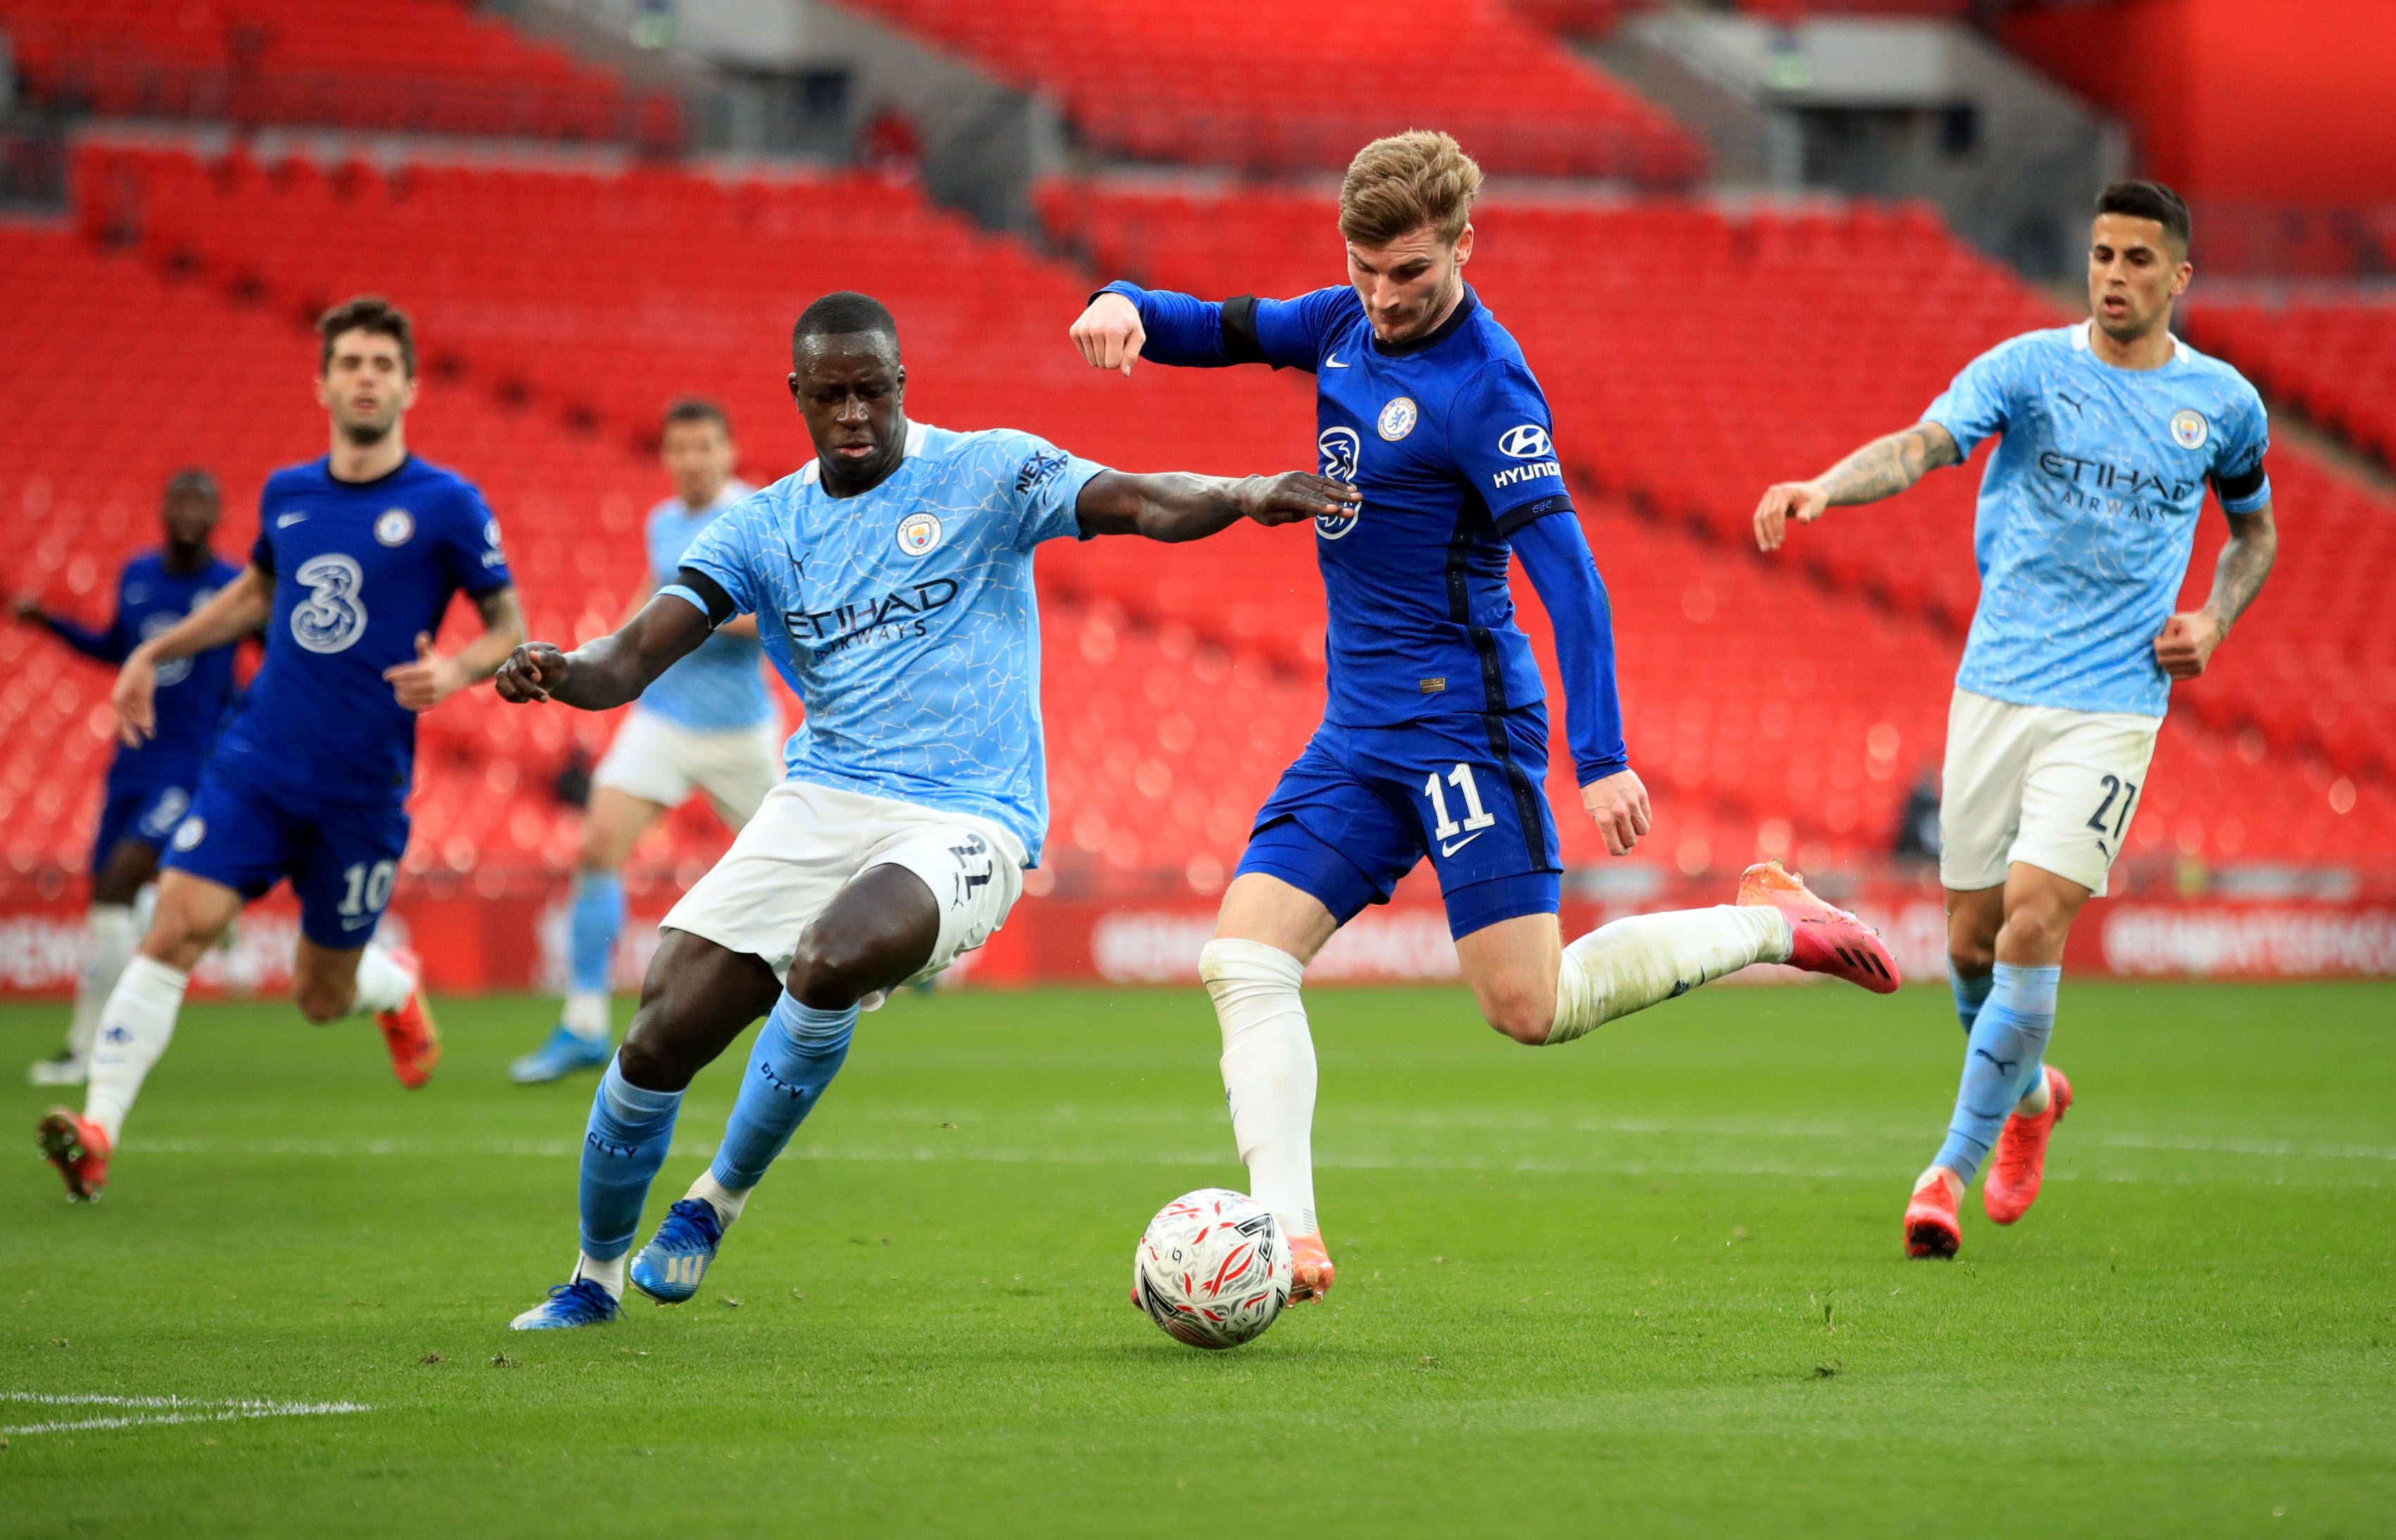 Soccer Football -  FA Cup Semi Final - Chelsea v Manchester City - Wembley Stadium, London, Britain - April 17, 2021 Manchester City's Benjamin Mendy in action with Chelsea's Timo Werner Pool via REUTERS/Adam Davy